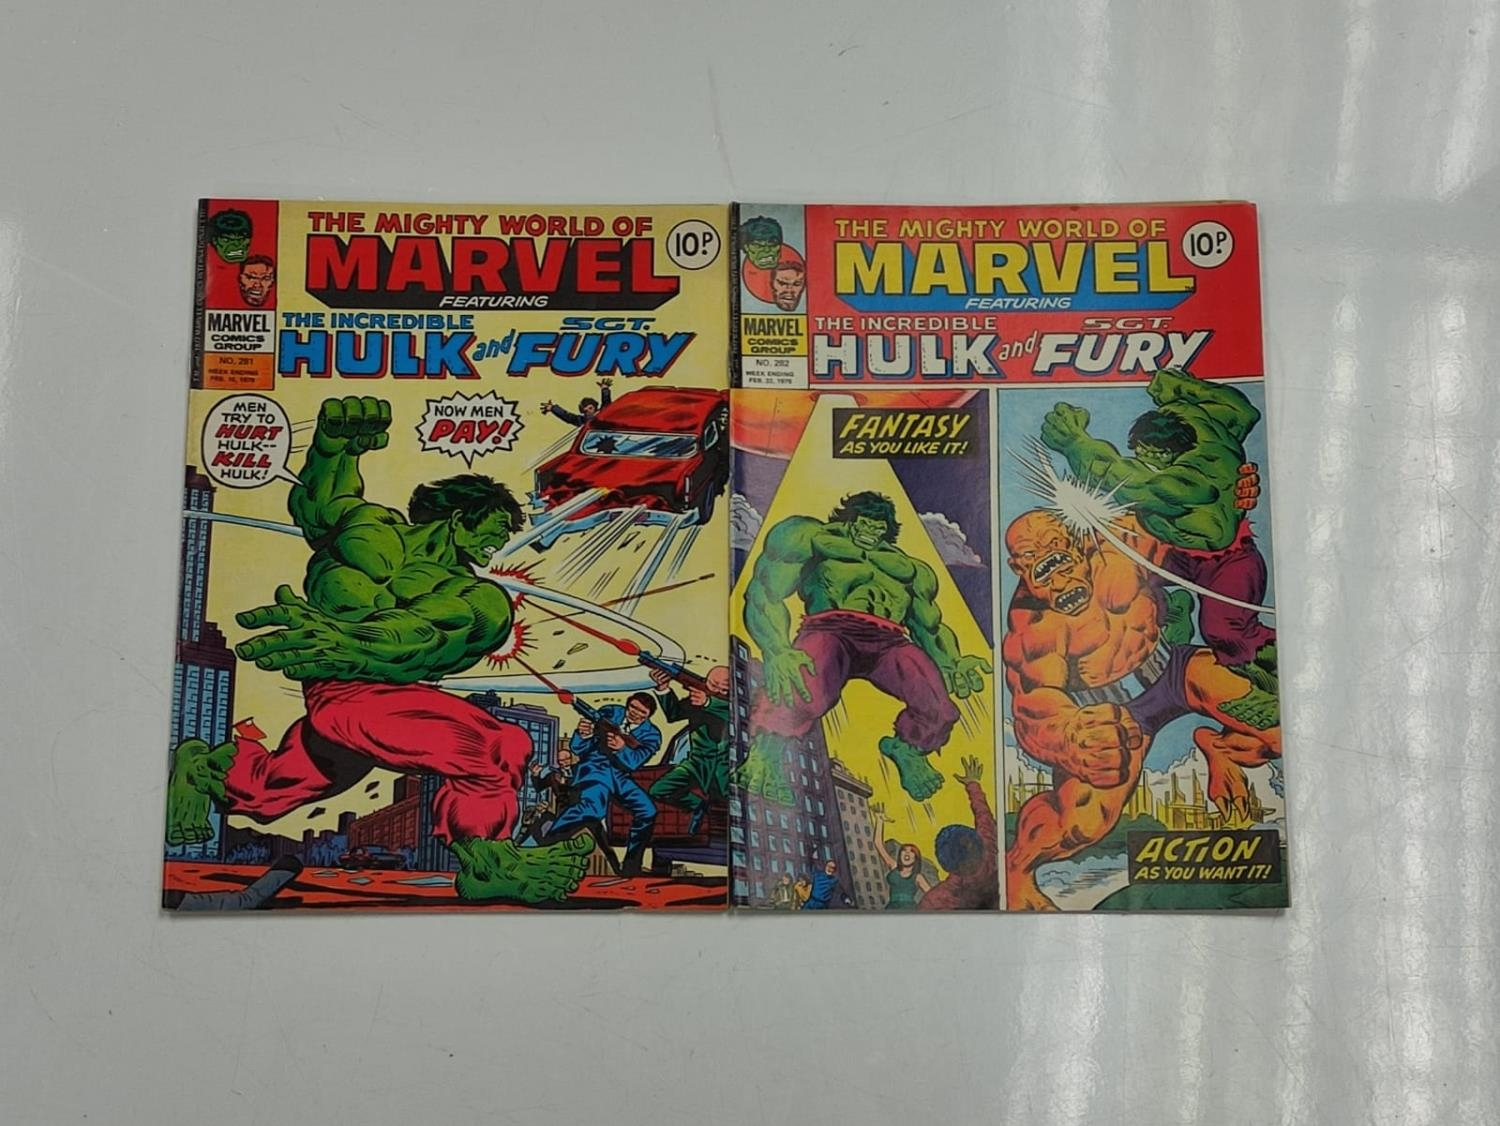 5 editions of Special Vintage Marvel Comics including 'The Tomb of Dracula'. - Image 4 of 15